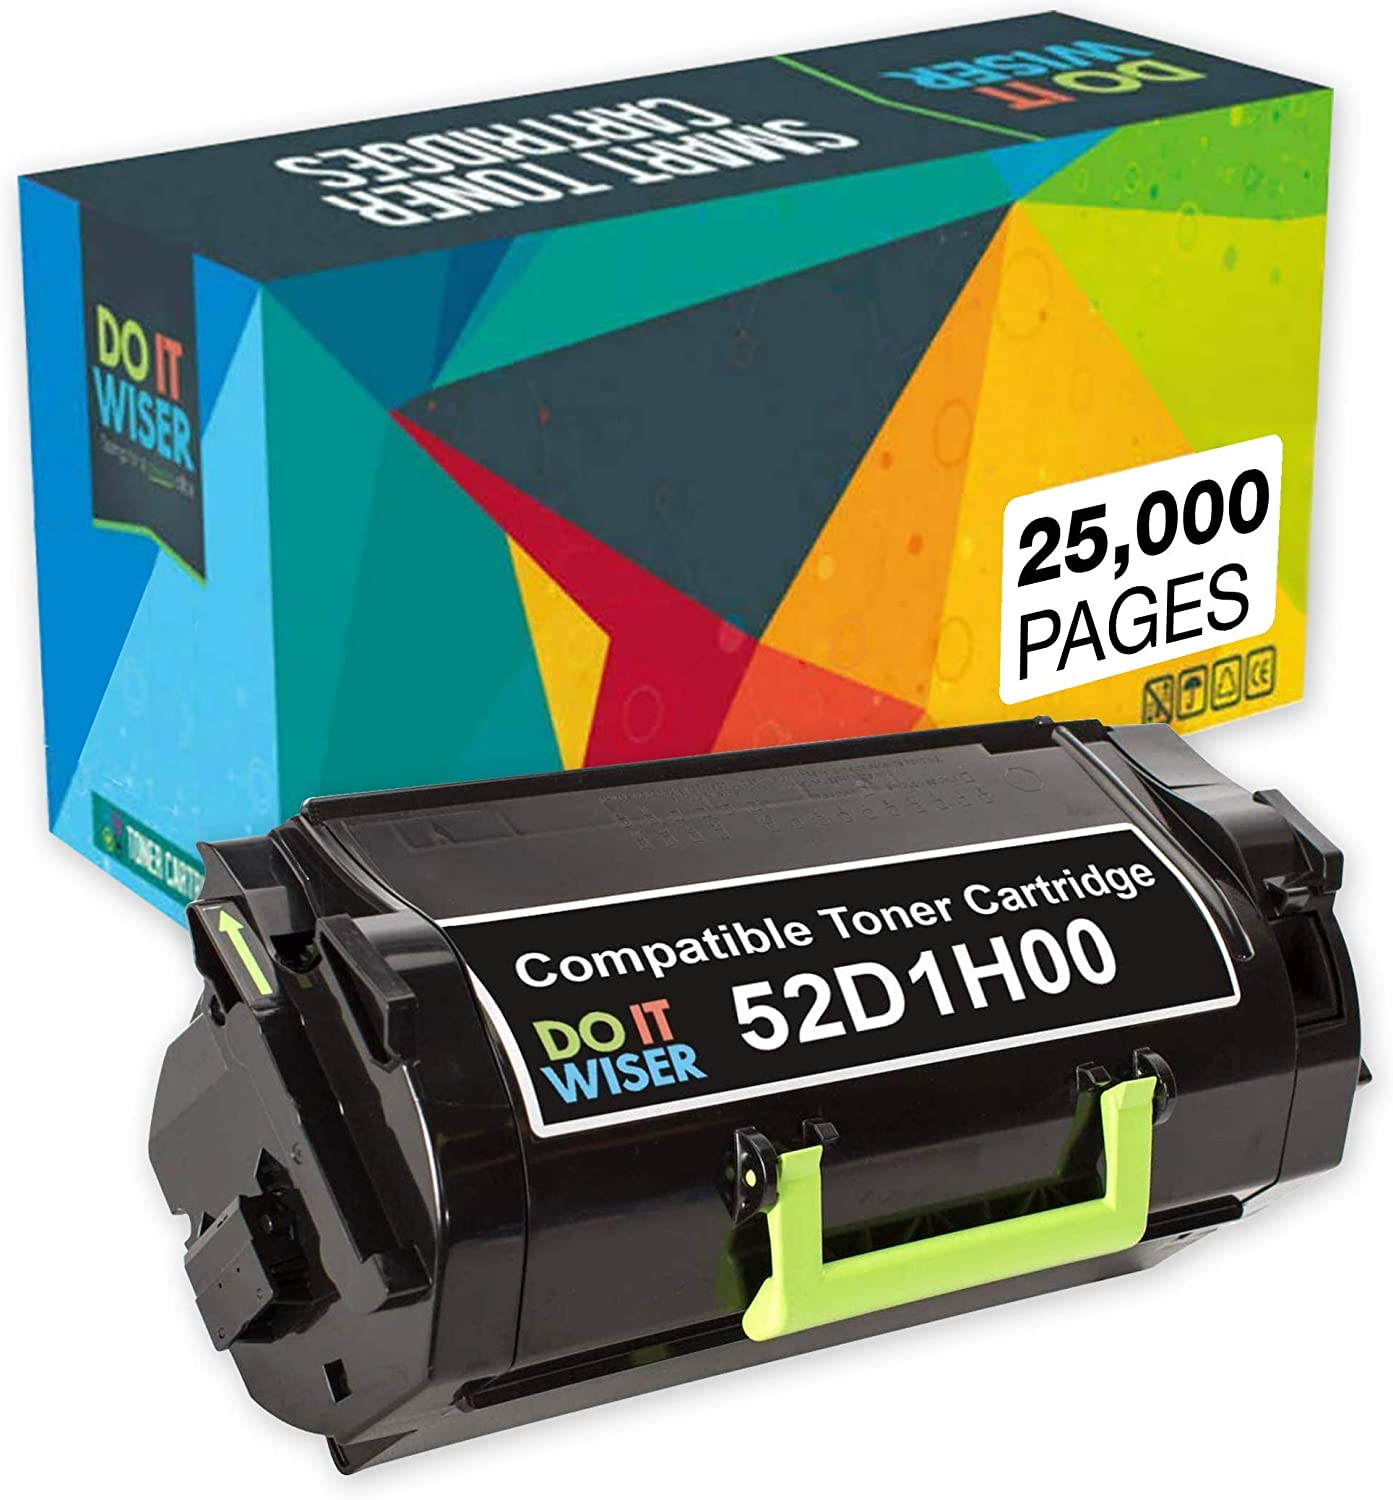 Do it Wiser Toner Cartridge Compatible with Lexmark 521H 52D1H00 MS810, MS810de, MS810n, MS710, MS710n, MS811, MS811n, MS812 tray (High Yield 25,000 Pages)